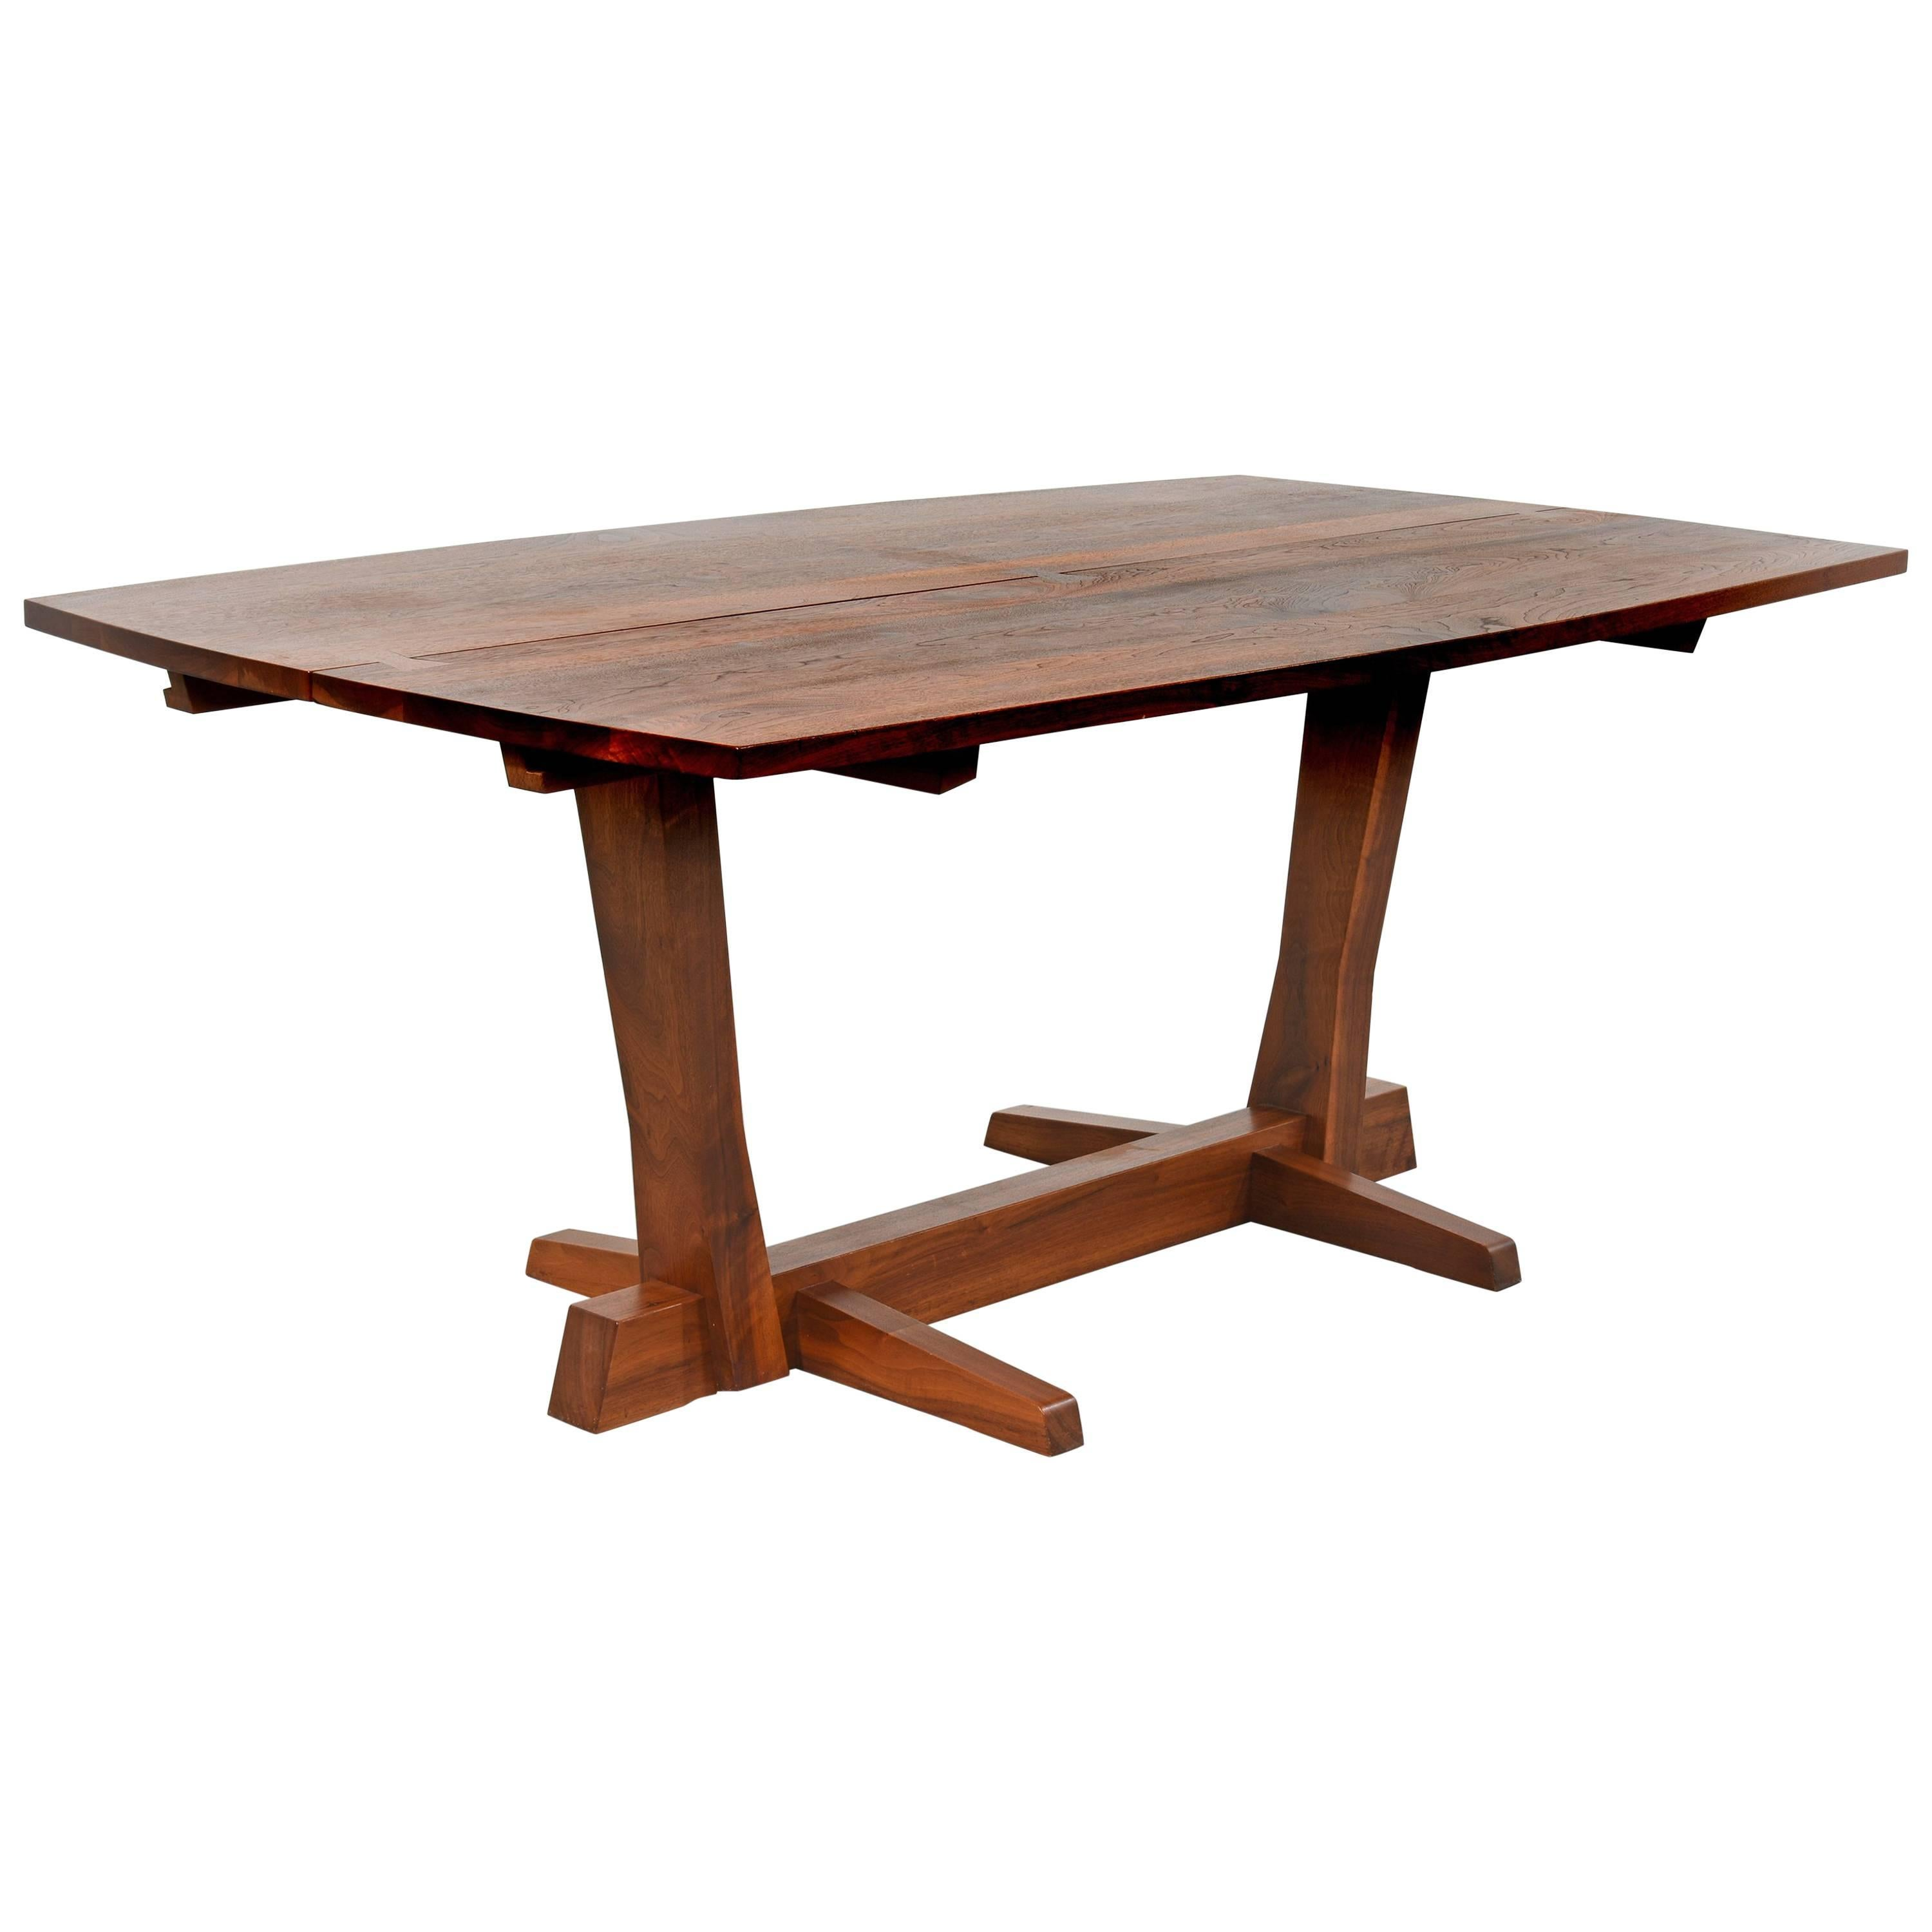 Early George Nakashima Walnut Conoid Dining Table With Rosewood Keys, 1965  For Sale